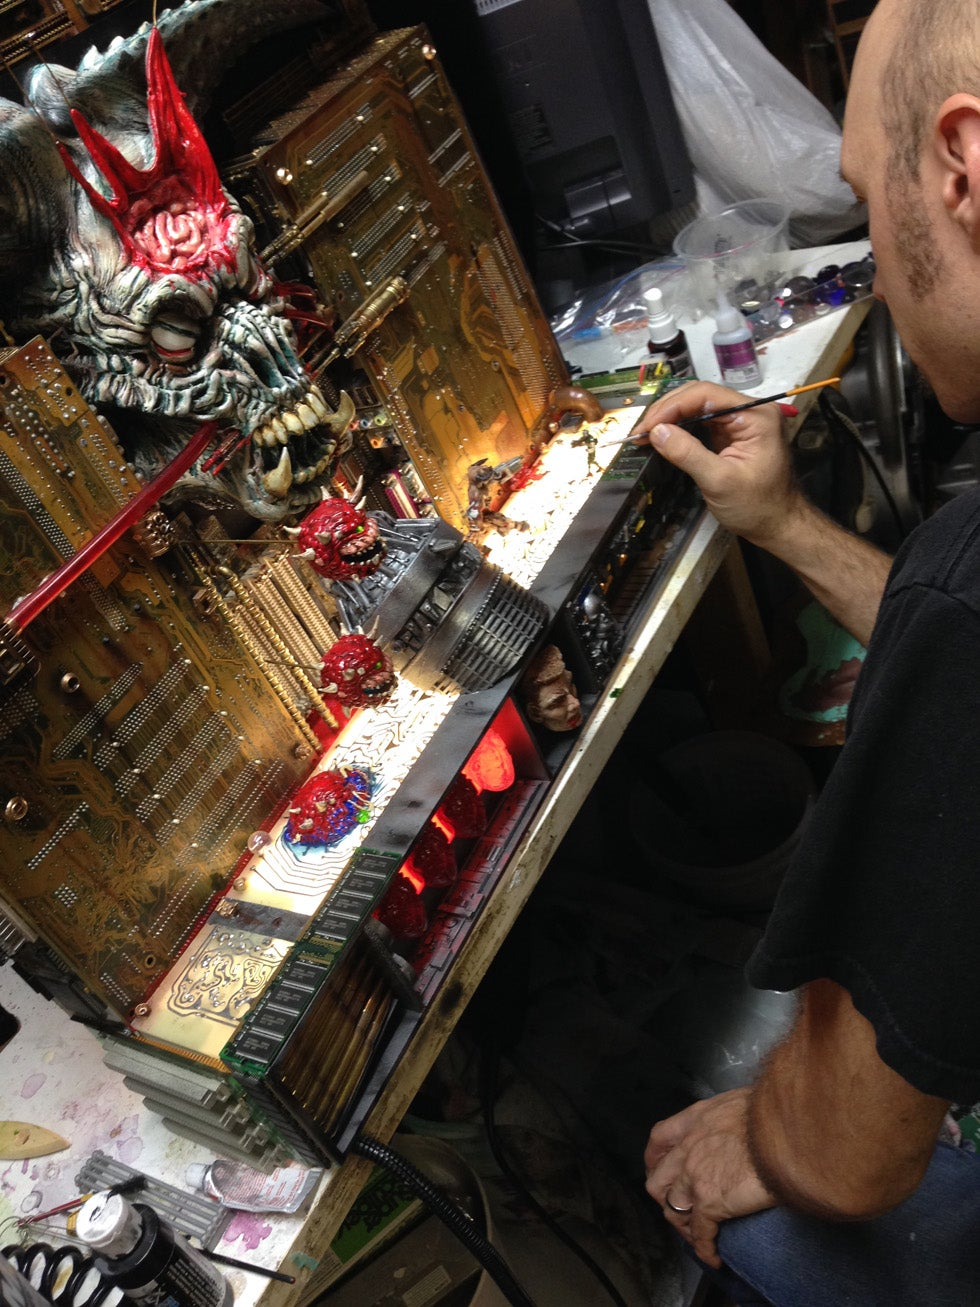 Shut Up And Take My Money >> Artist Turns Doom II's Final Level Into $6000 Sculpture ...